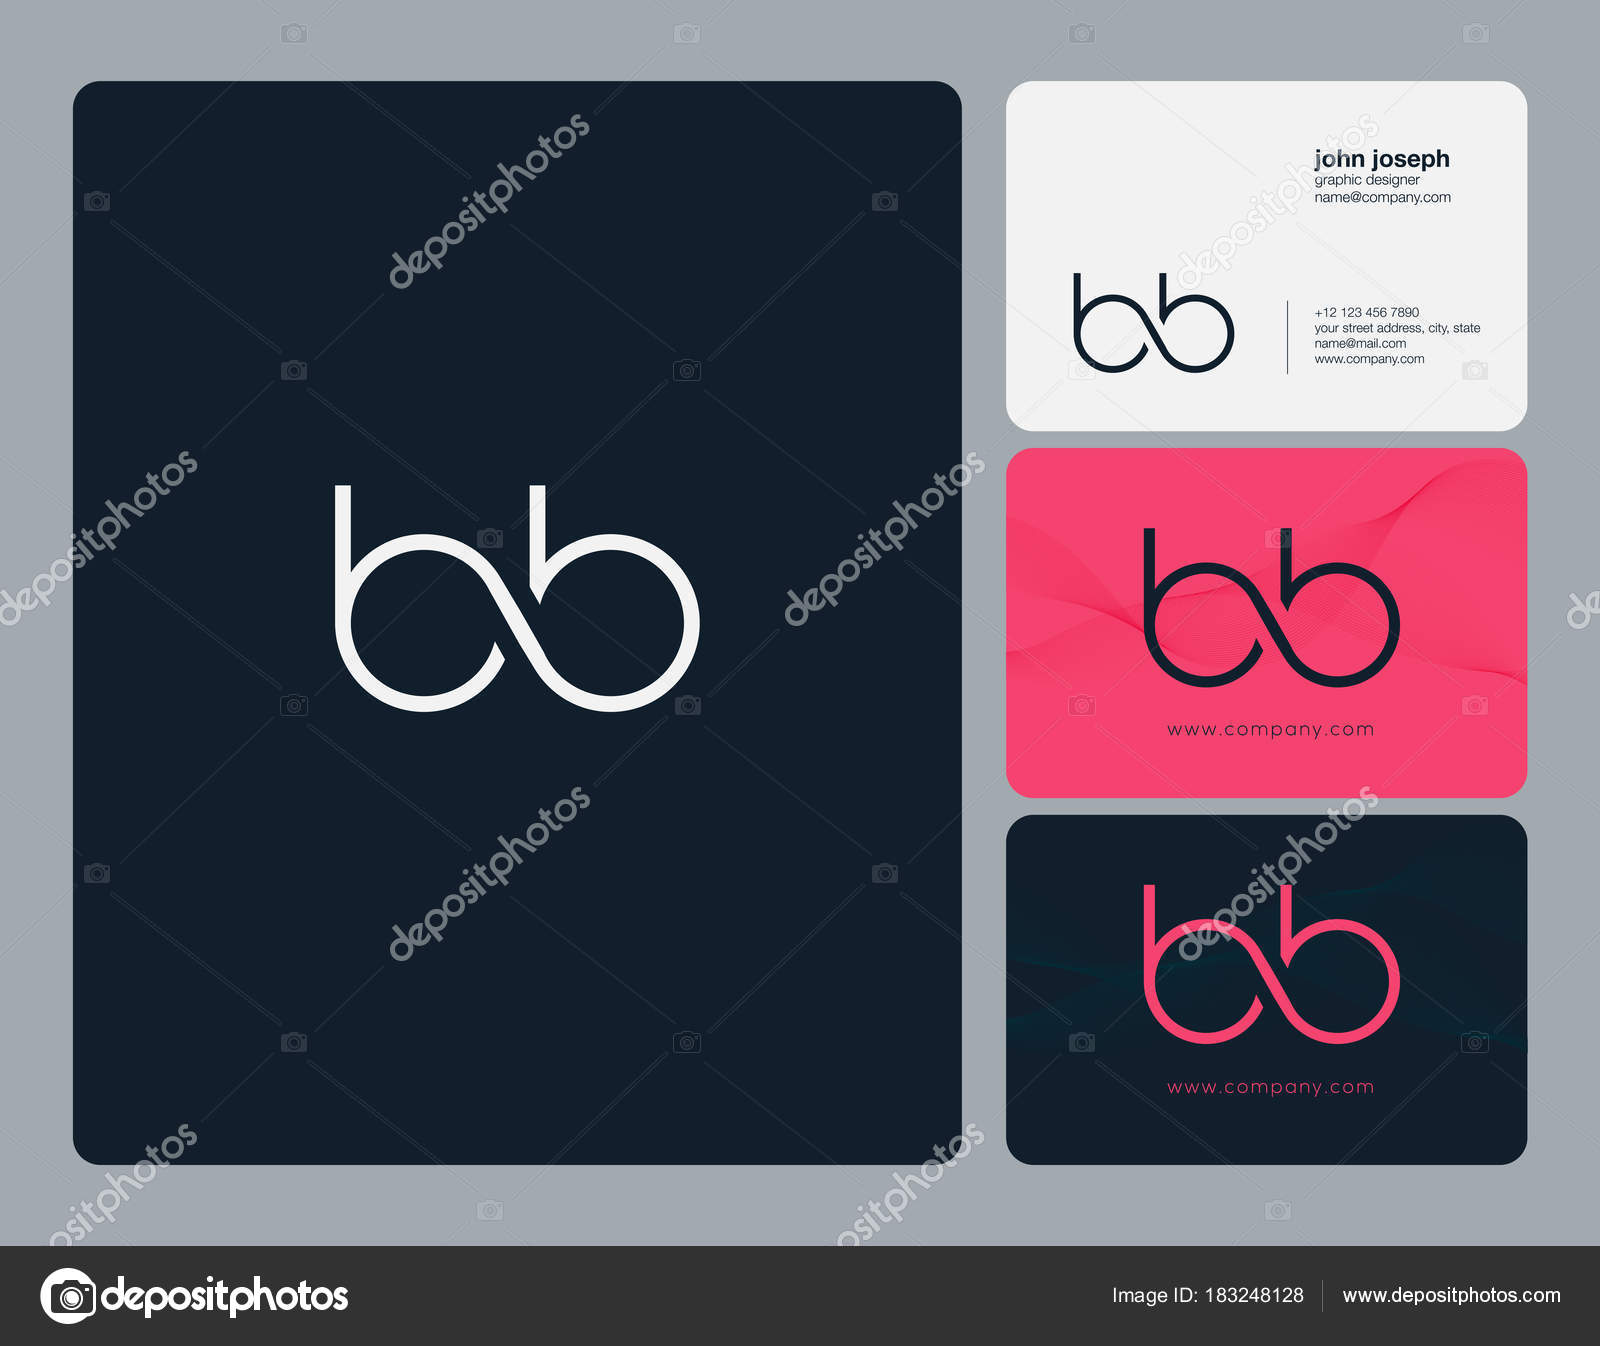 Letters joint logo icon business card vector template stock bb letters joint logo icon with business card vector template vector by ajayandzyngmail reheart Gallery